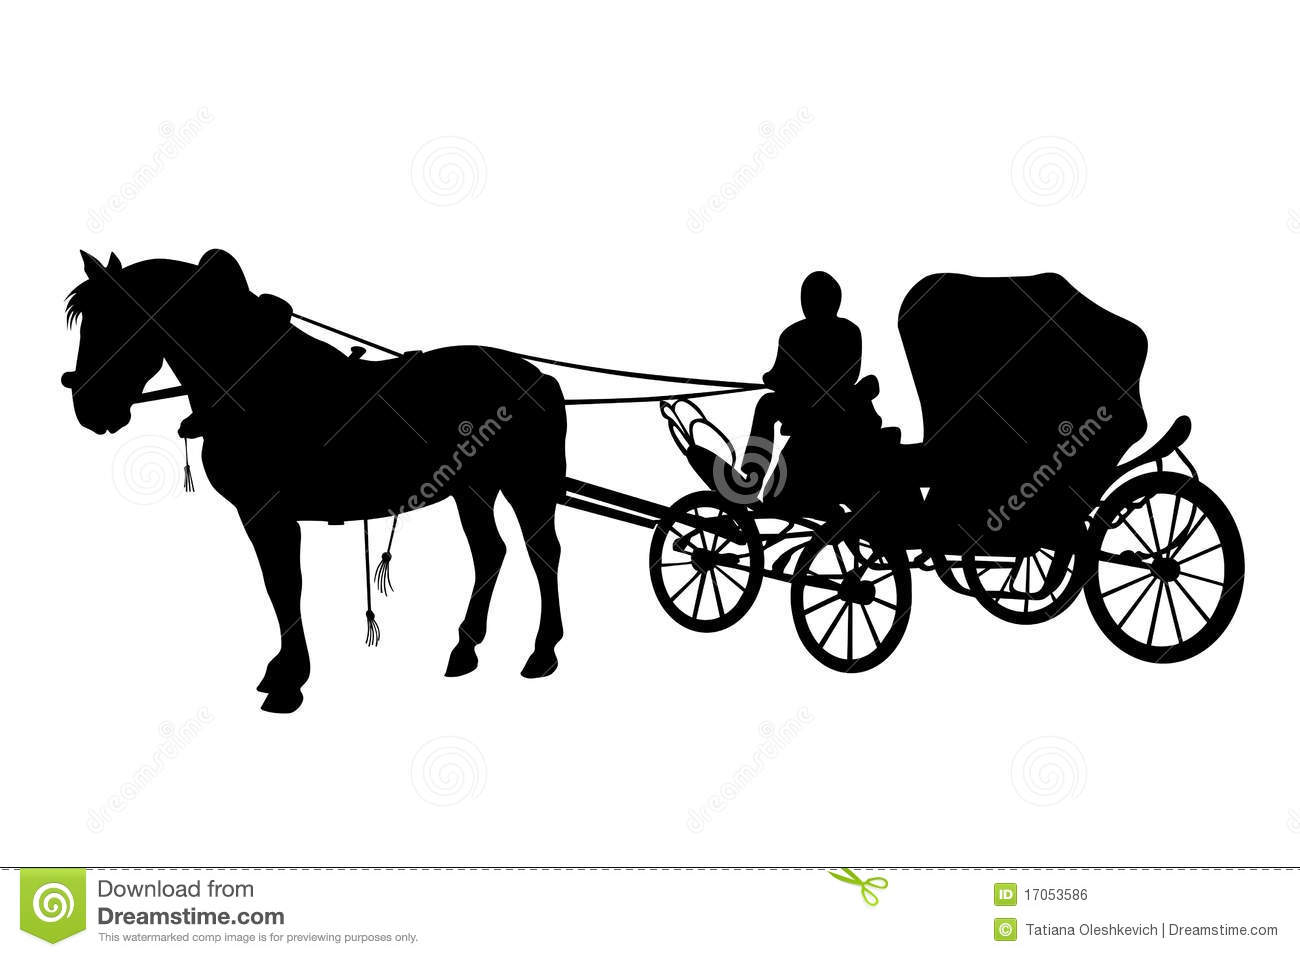 Horse And Carriage Black Silhouettes Royalty Free Stock Image   Image